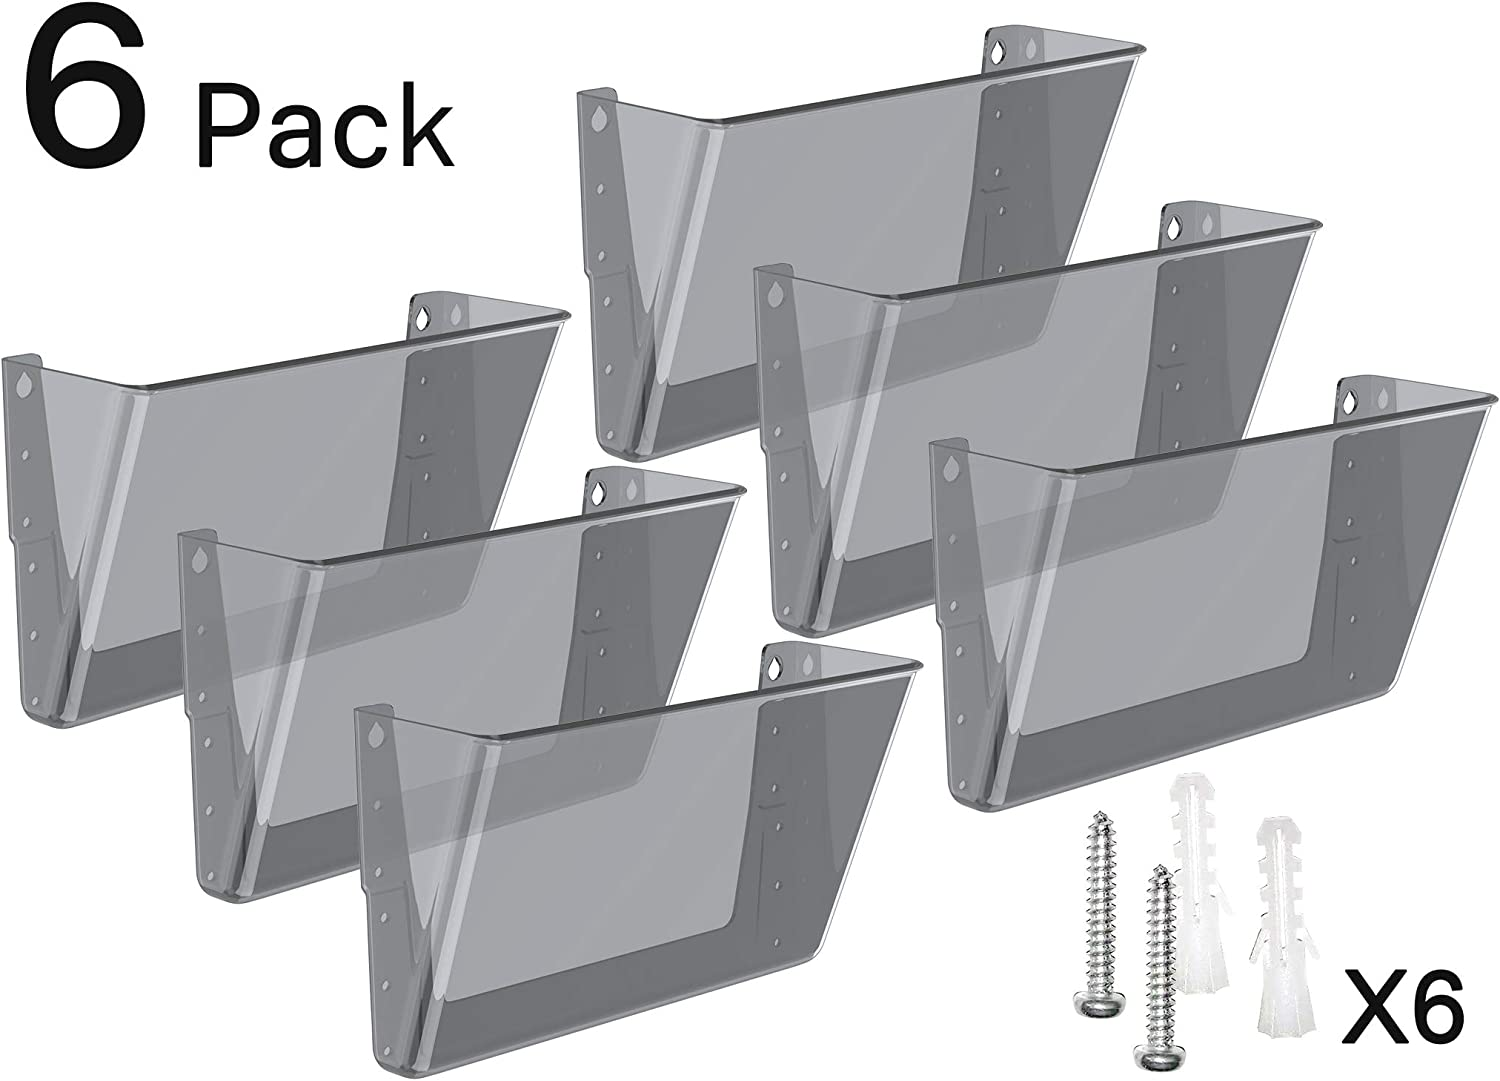 MaxGear Acrylic File Holder Wall Organizer 6 Pockets Hanging File Organizers Wall Mounted Paper Organizer Holders Wall Bins for Office and Home, Smoke, 13x4x7 inches